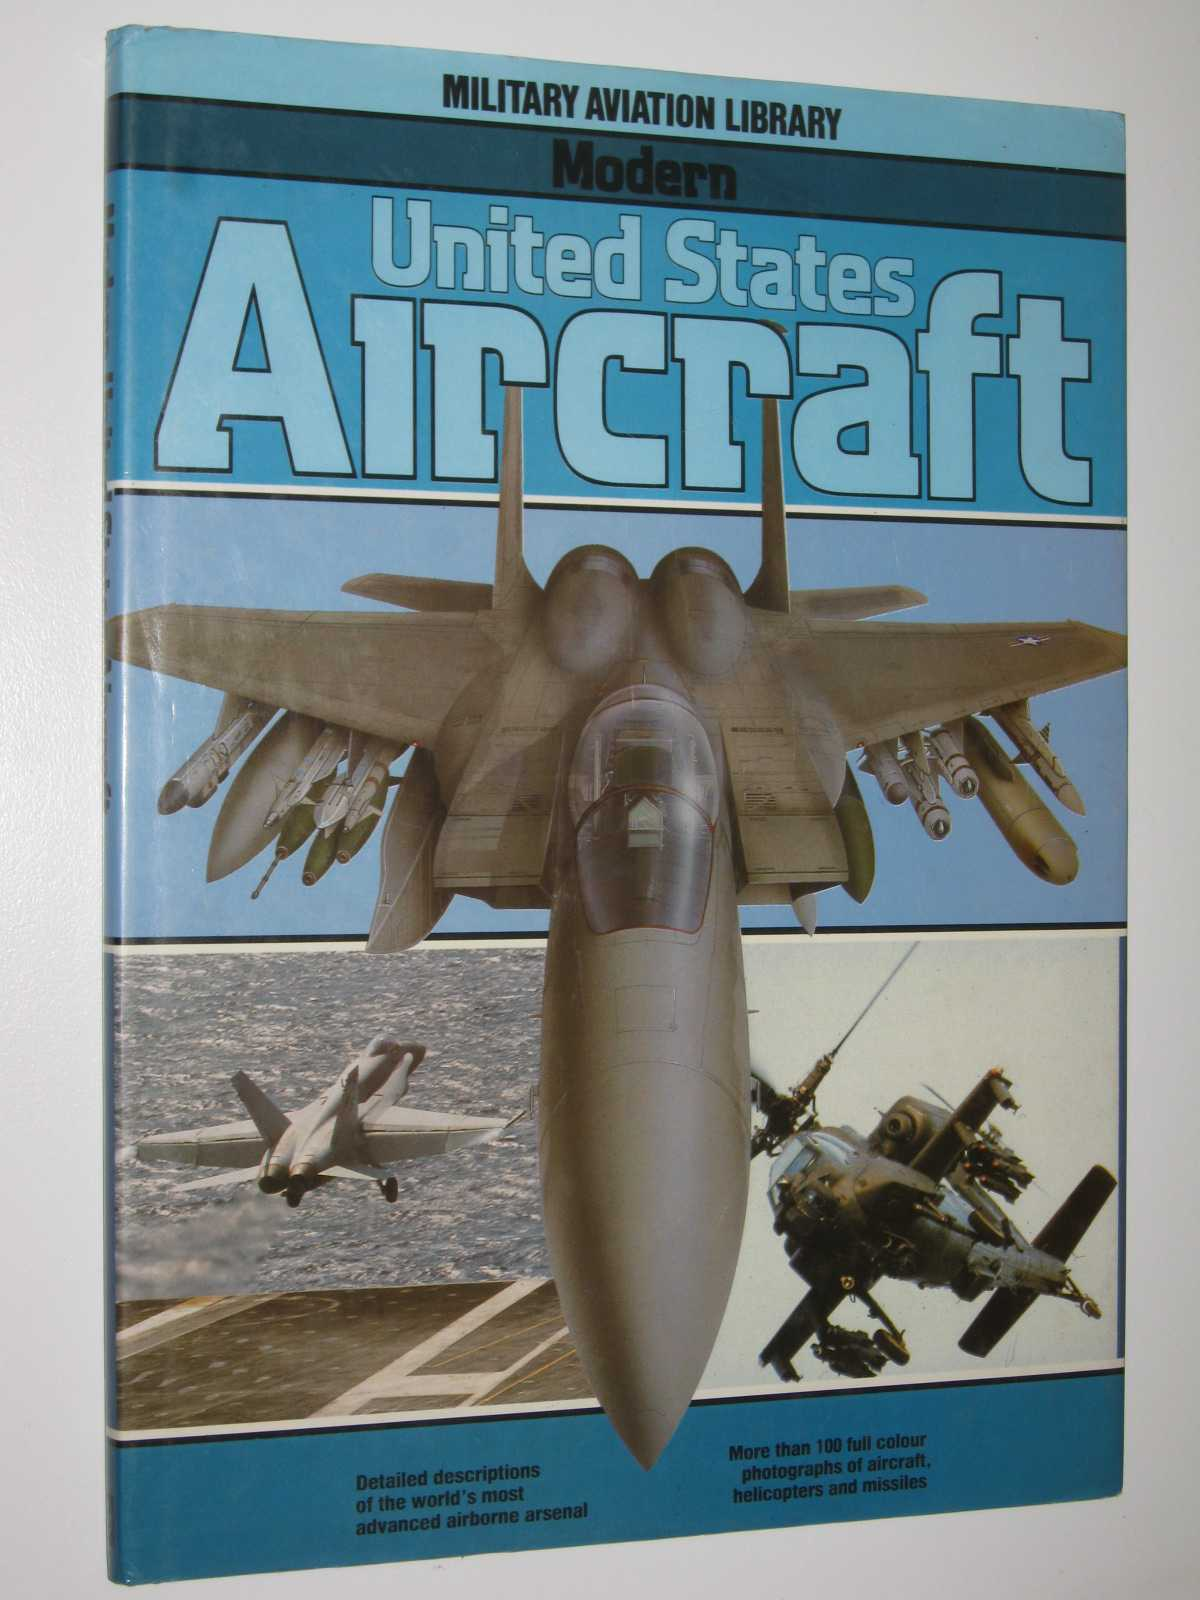 Image for Modern United States Aircraft - Military Aviation Library Series